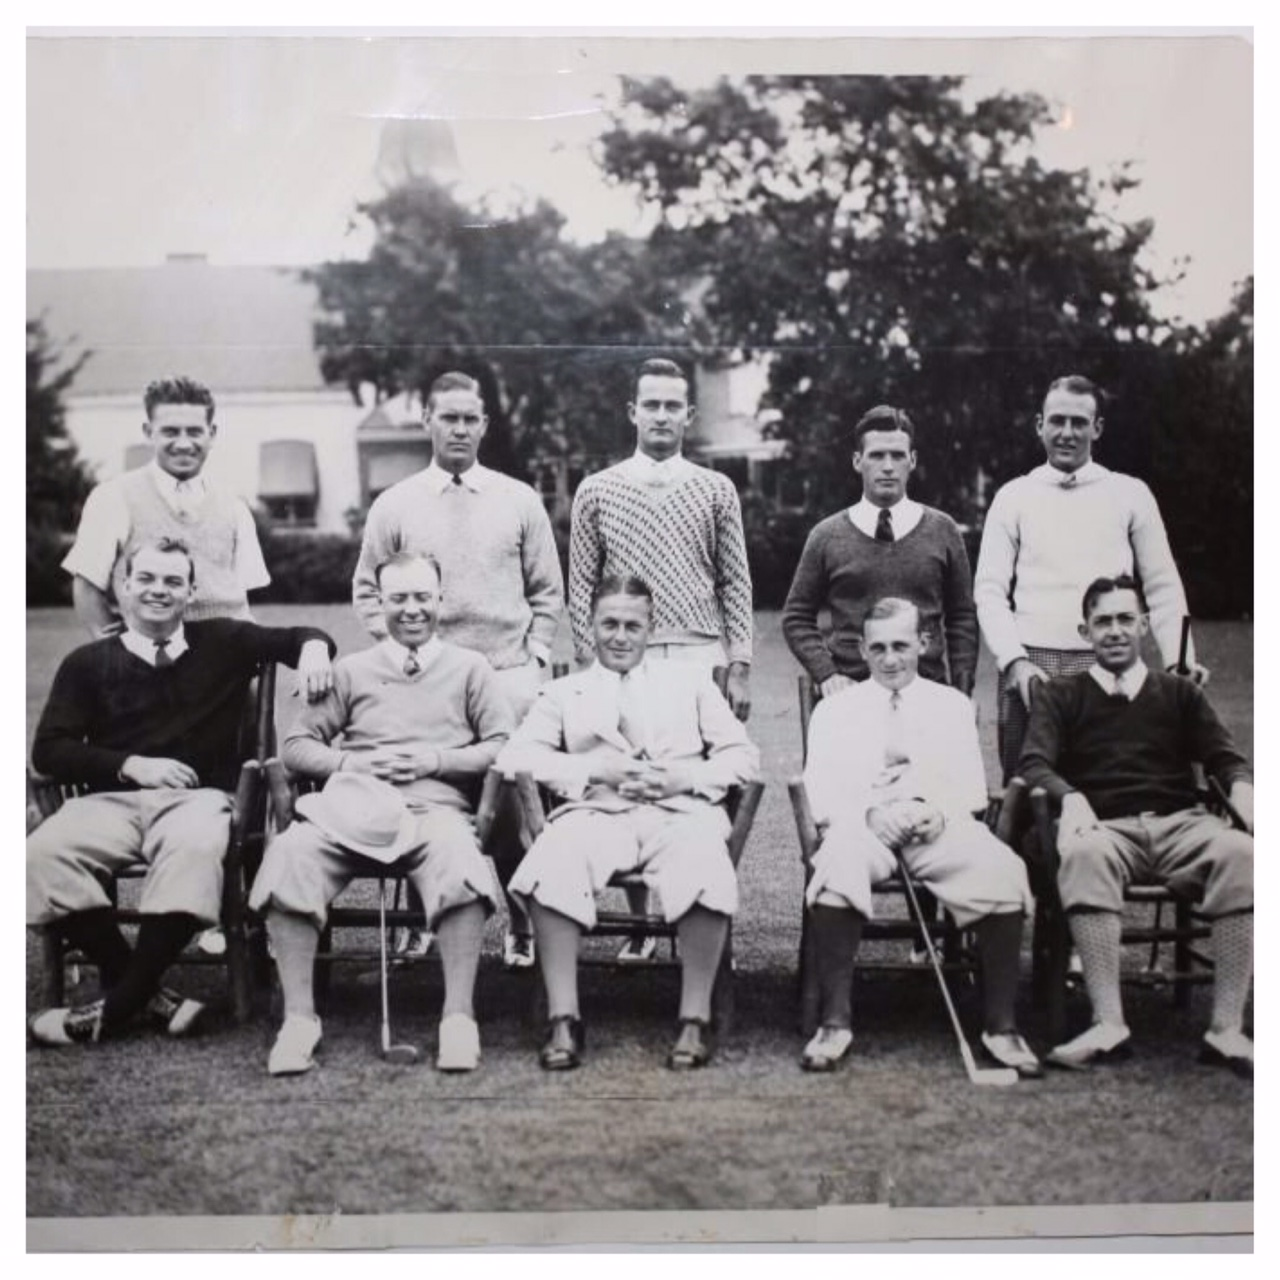 WC 1928 USA Team